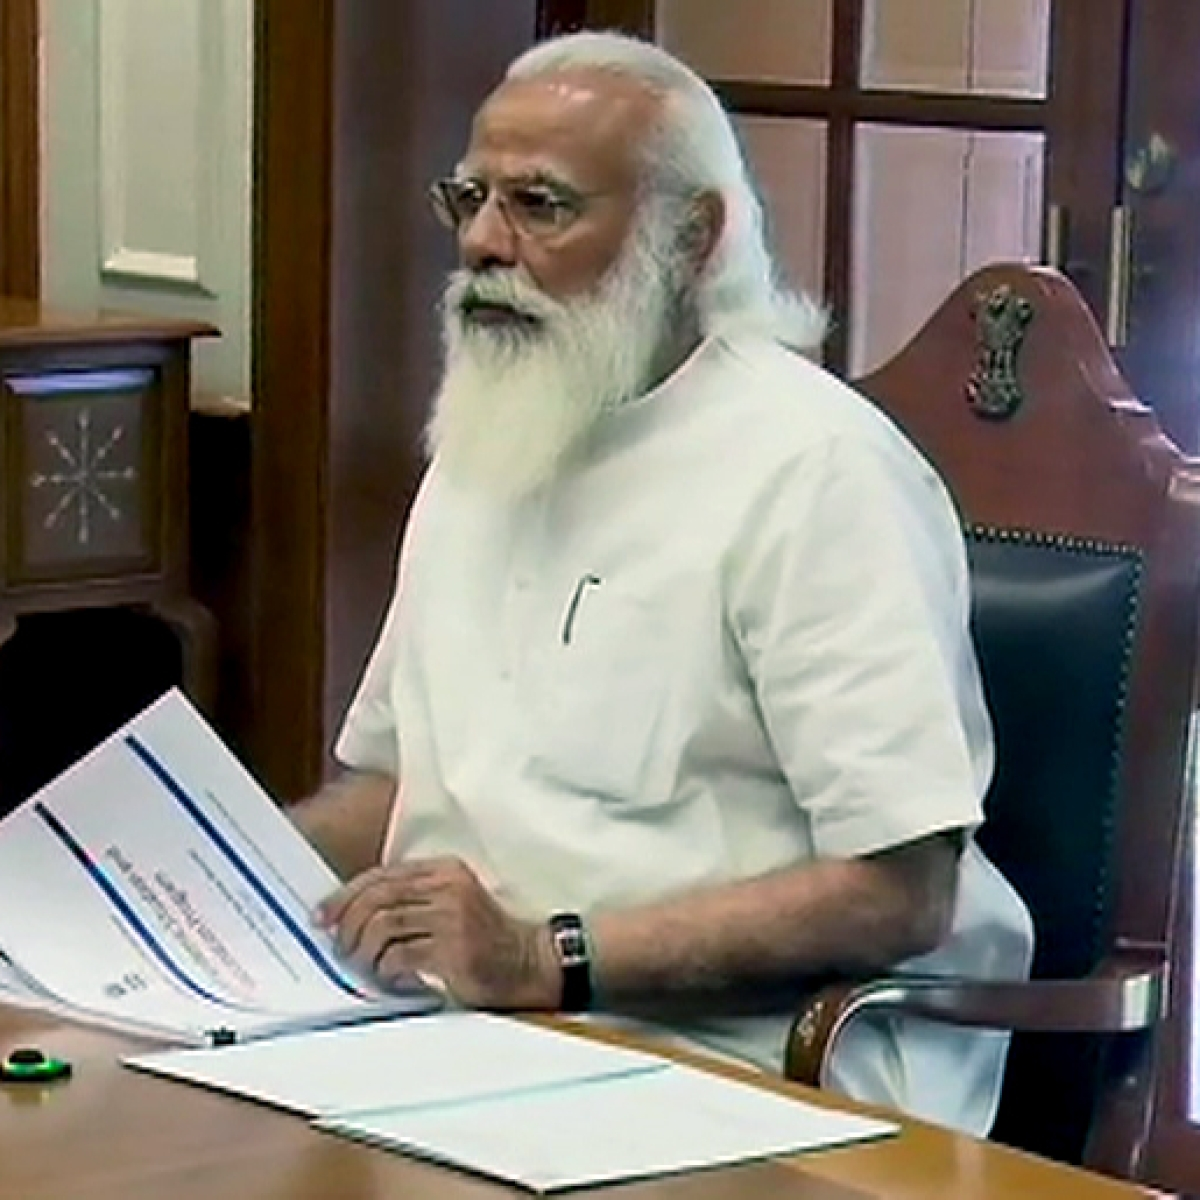 As India records whopping 2.73 lakh new COVID-19 cases, PM Modi chairs meeting to review situation